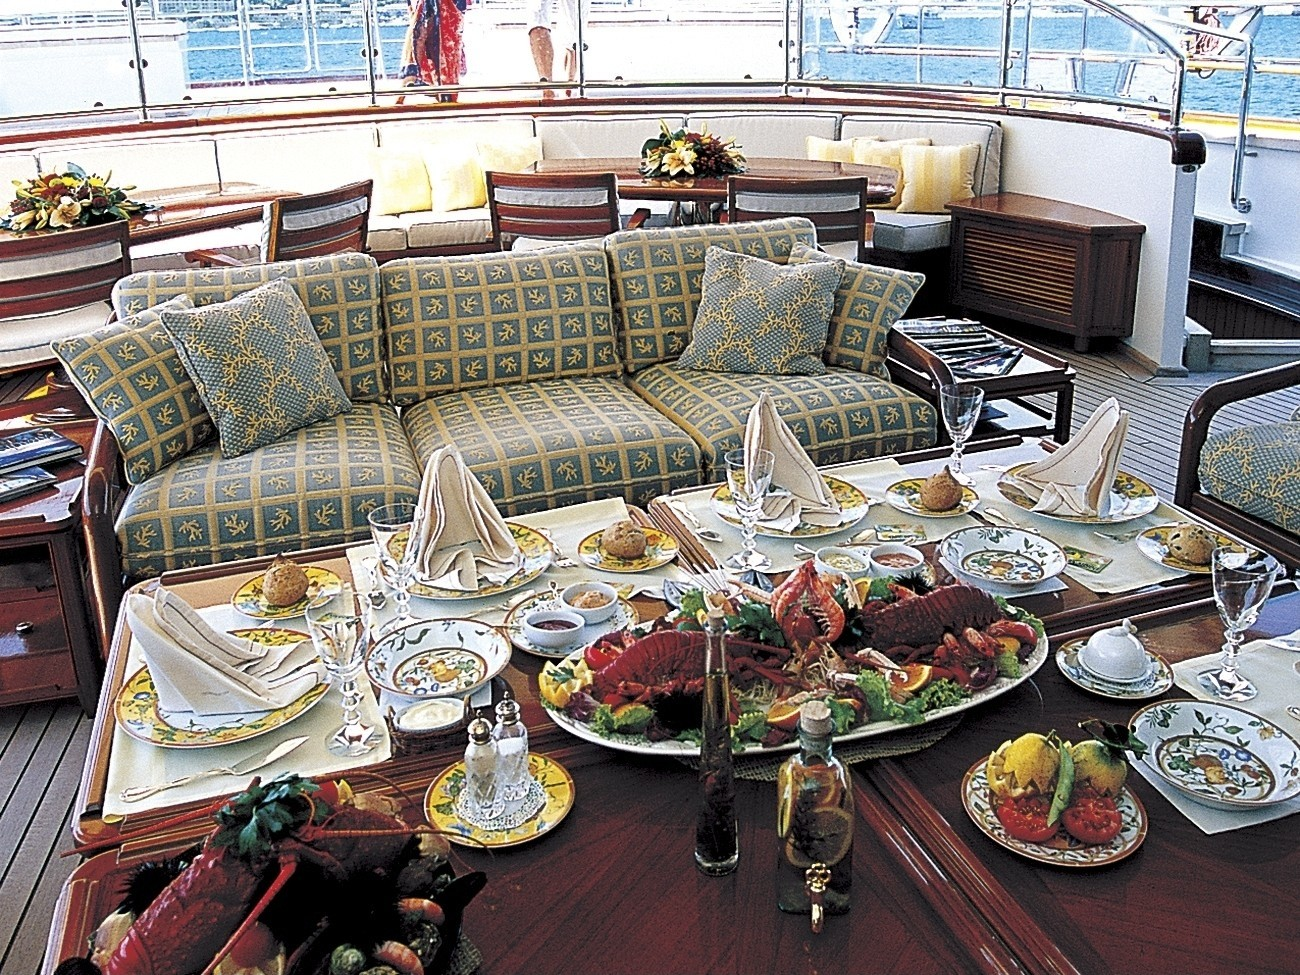 External Eating/dining On Yacht ATMOSPHERE